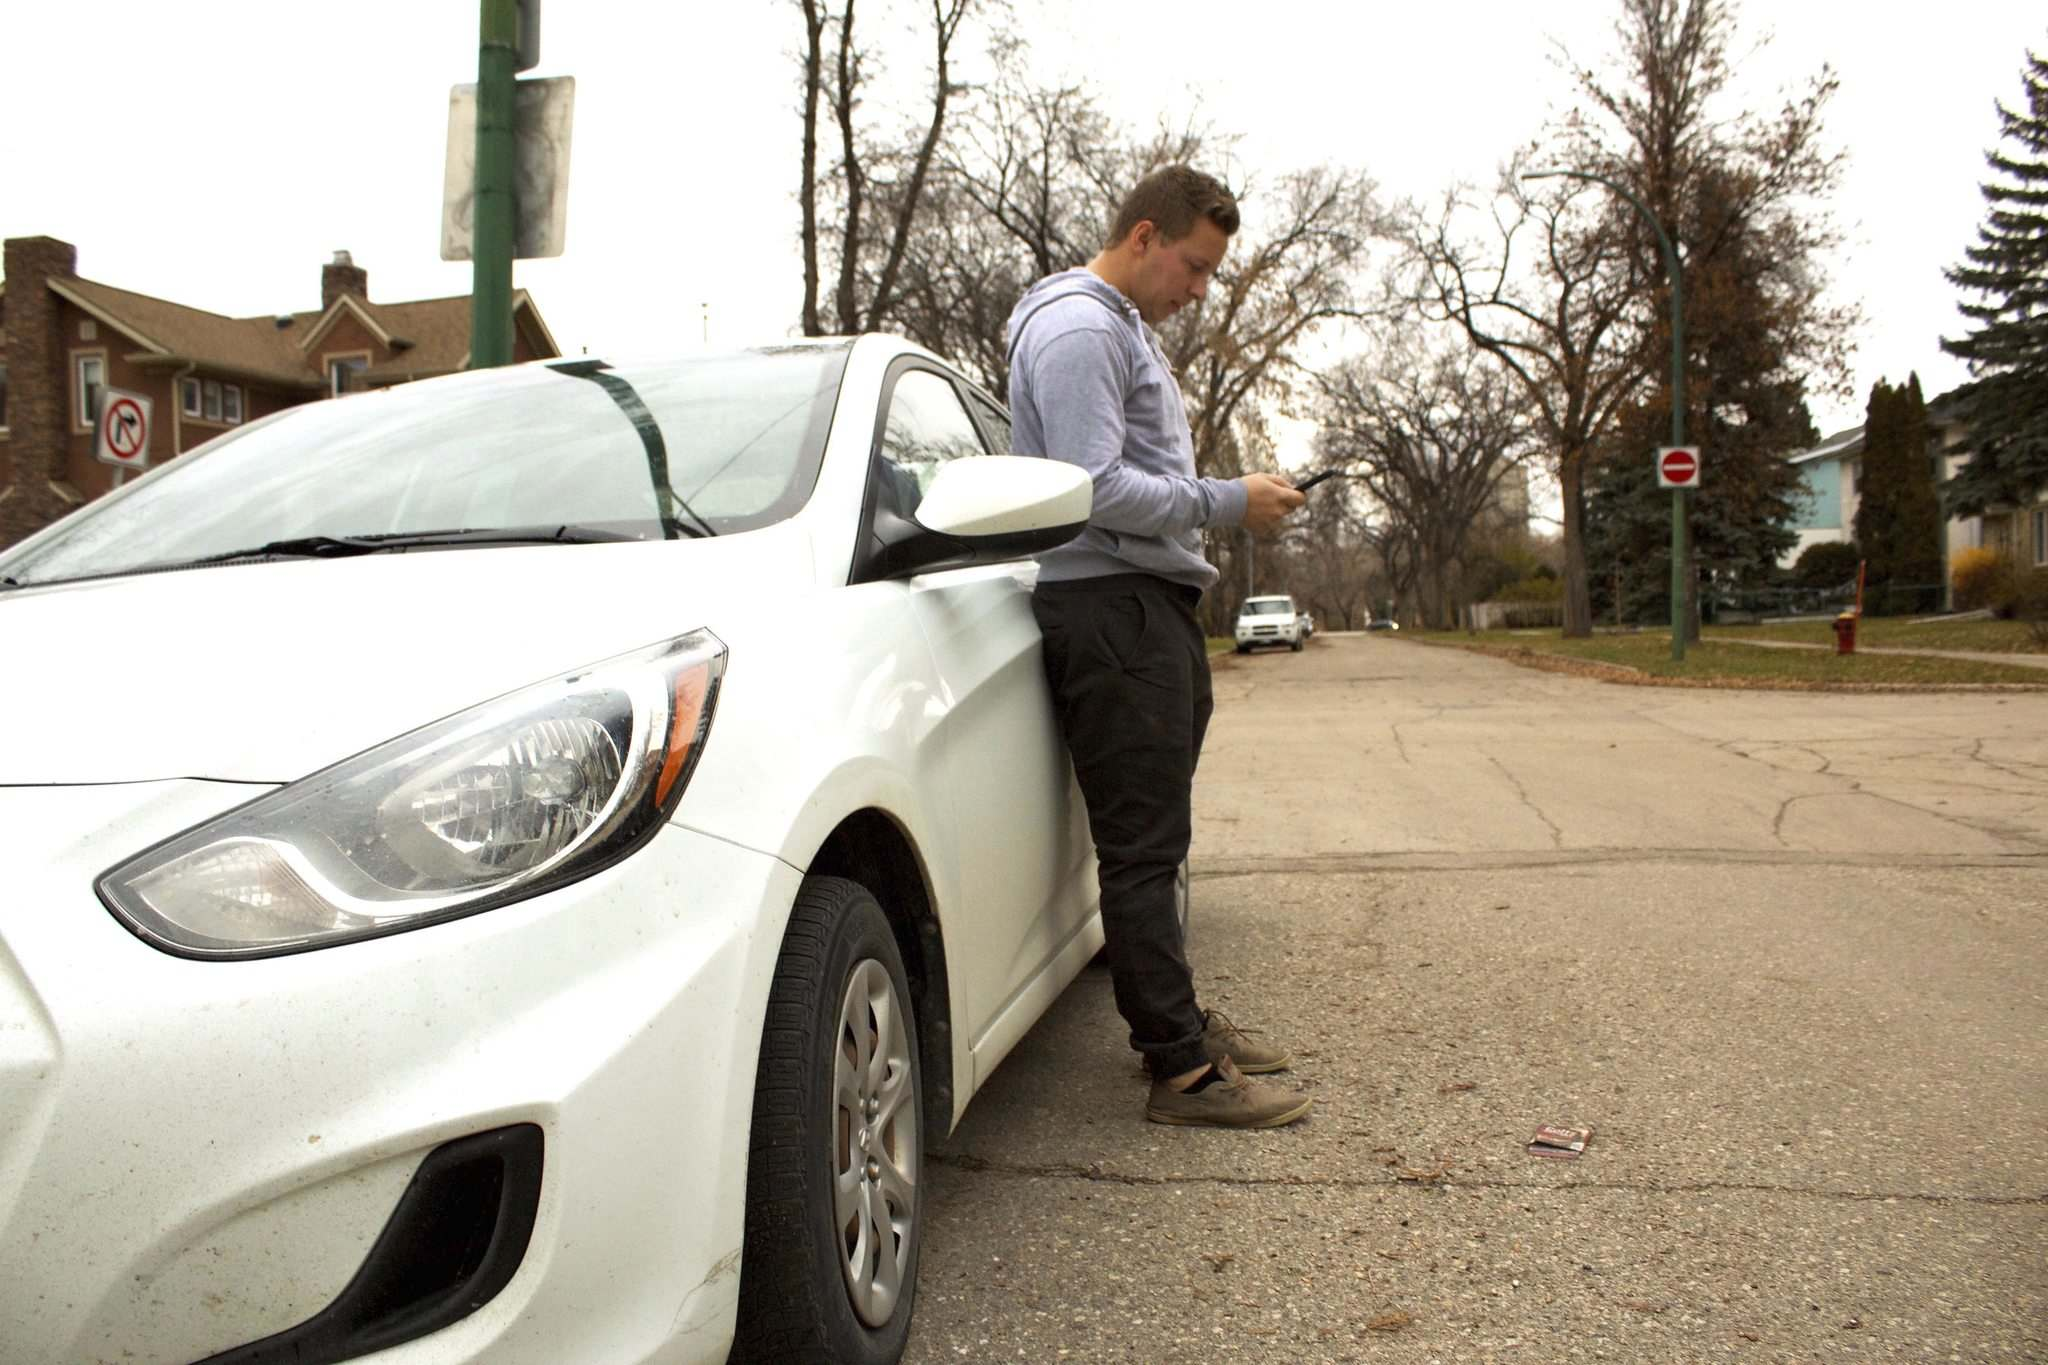 Curbing distracted driving -- there's an app for that